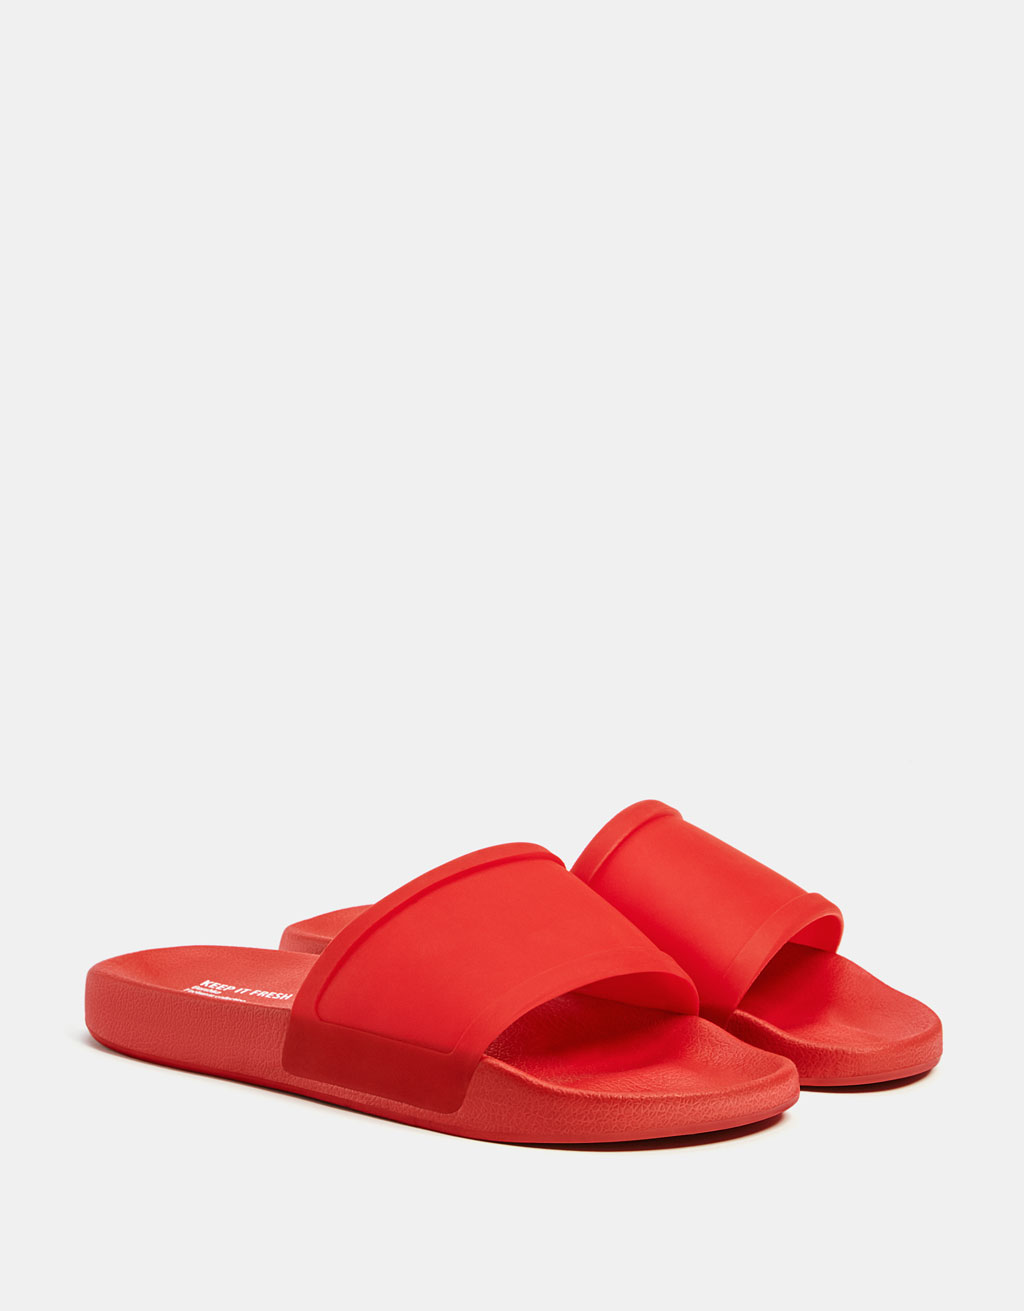 Men's red slides